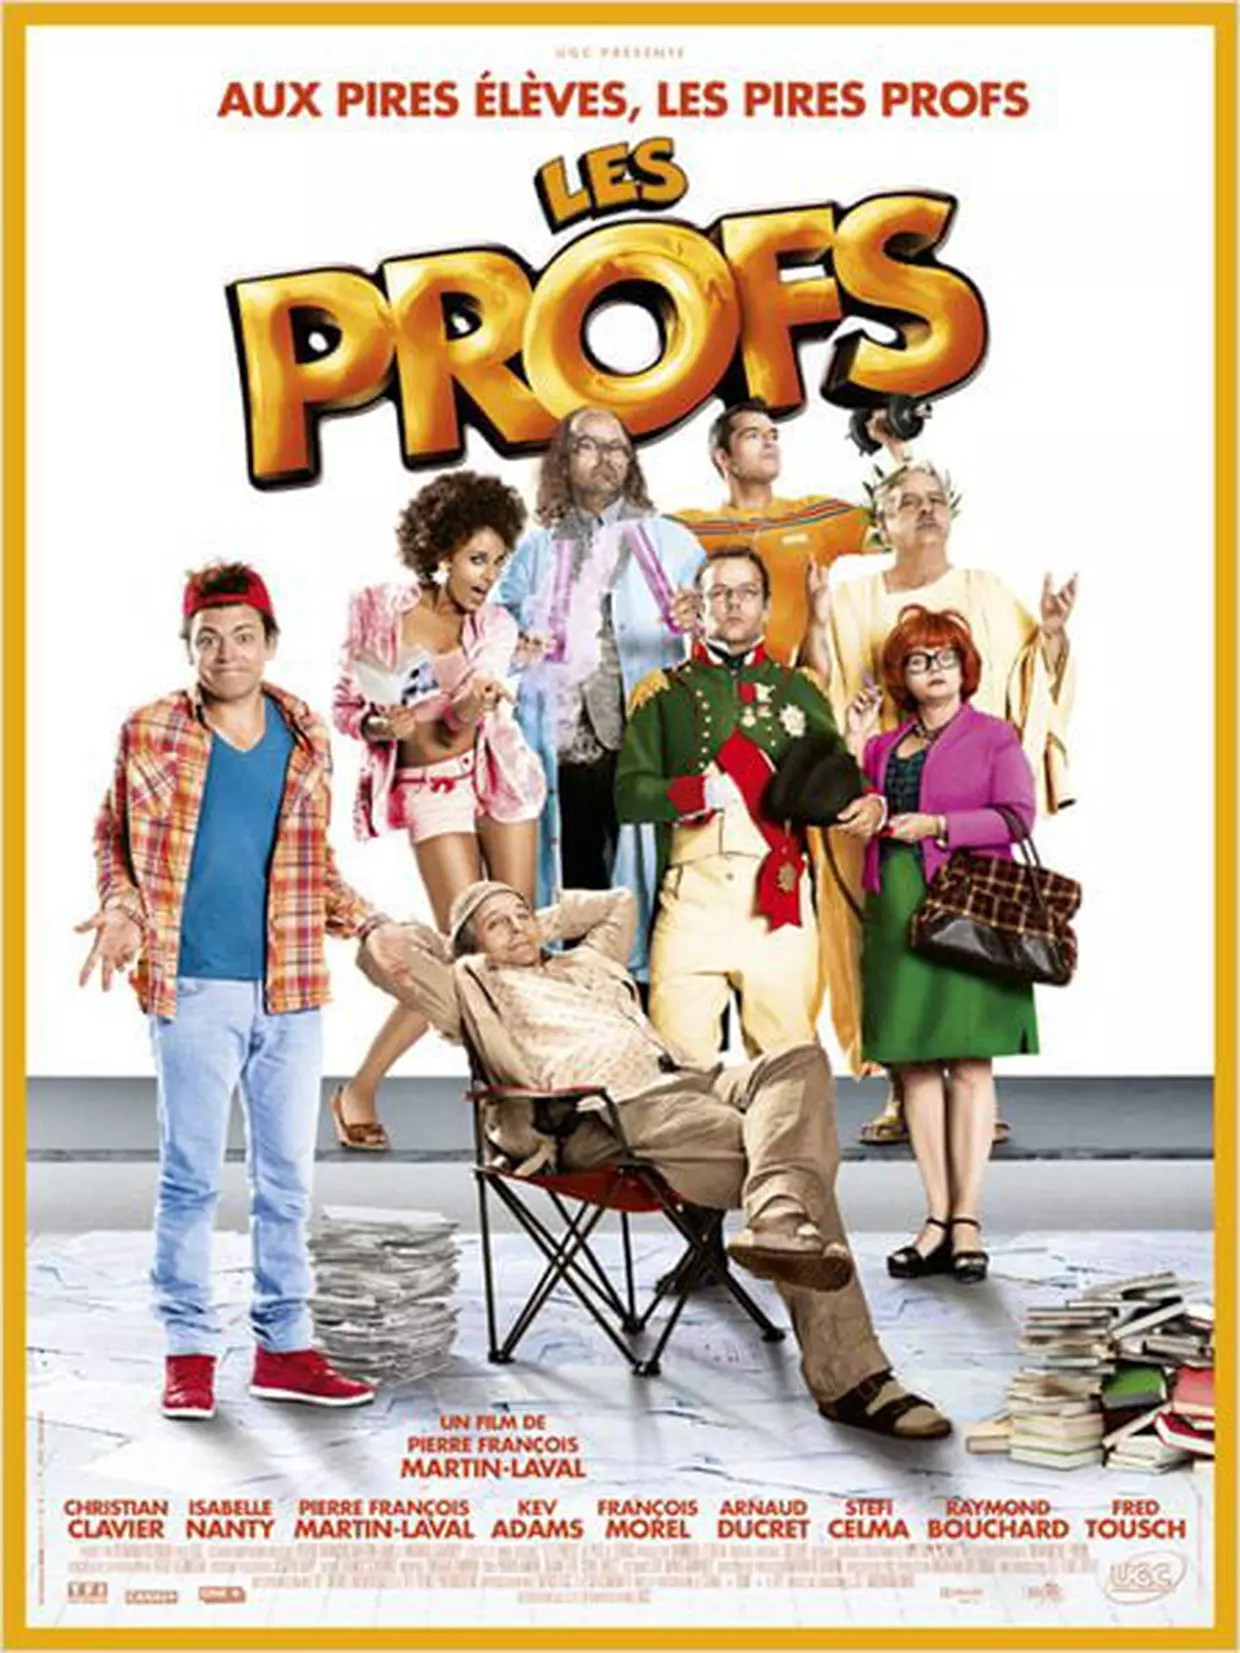 Les Prof 1 Streaming : streaming, Profs, Bande, Annonce, Film,, Séances,, Streaming,, Sortie,